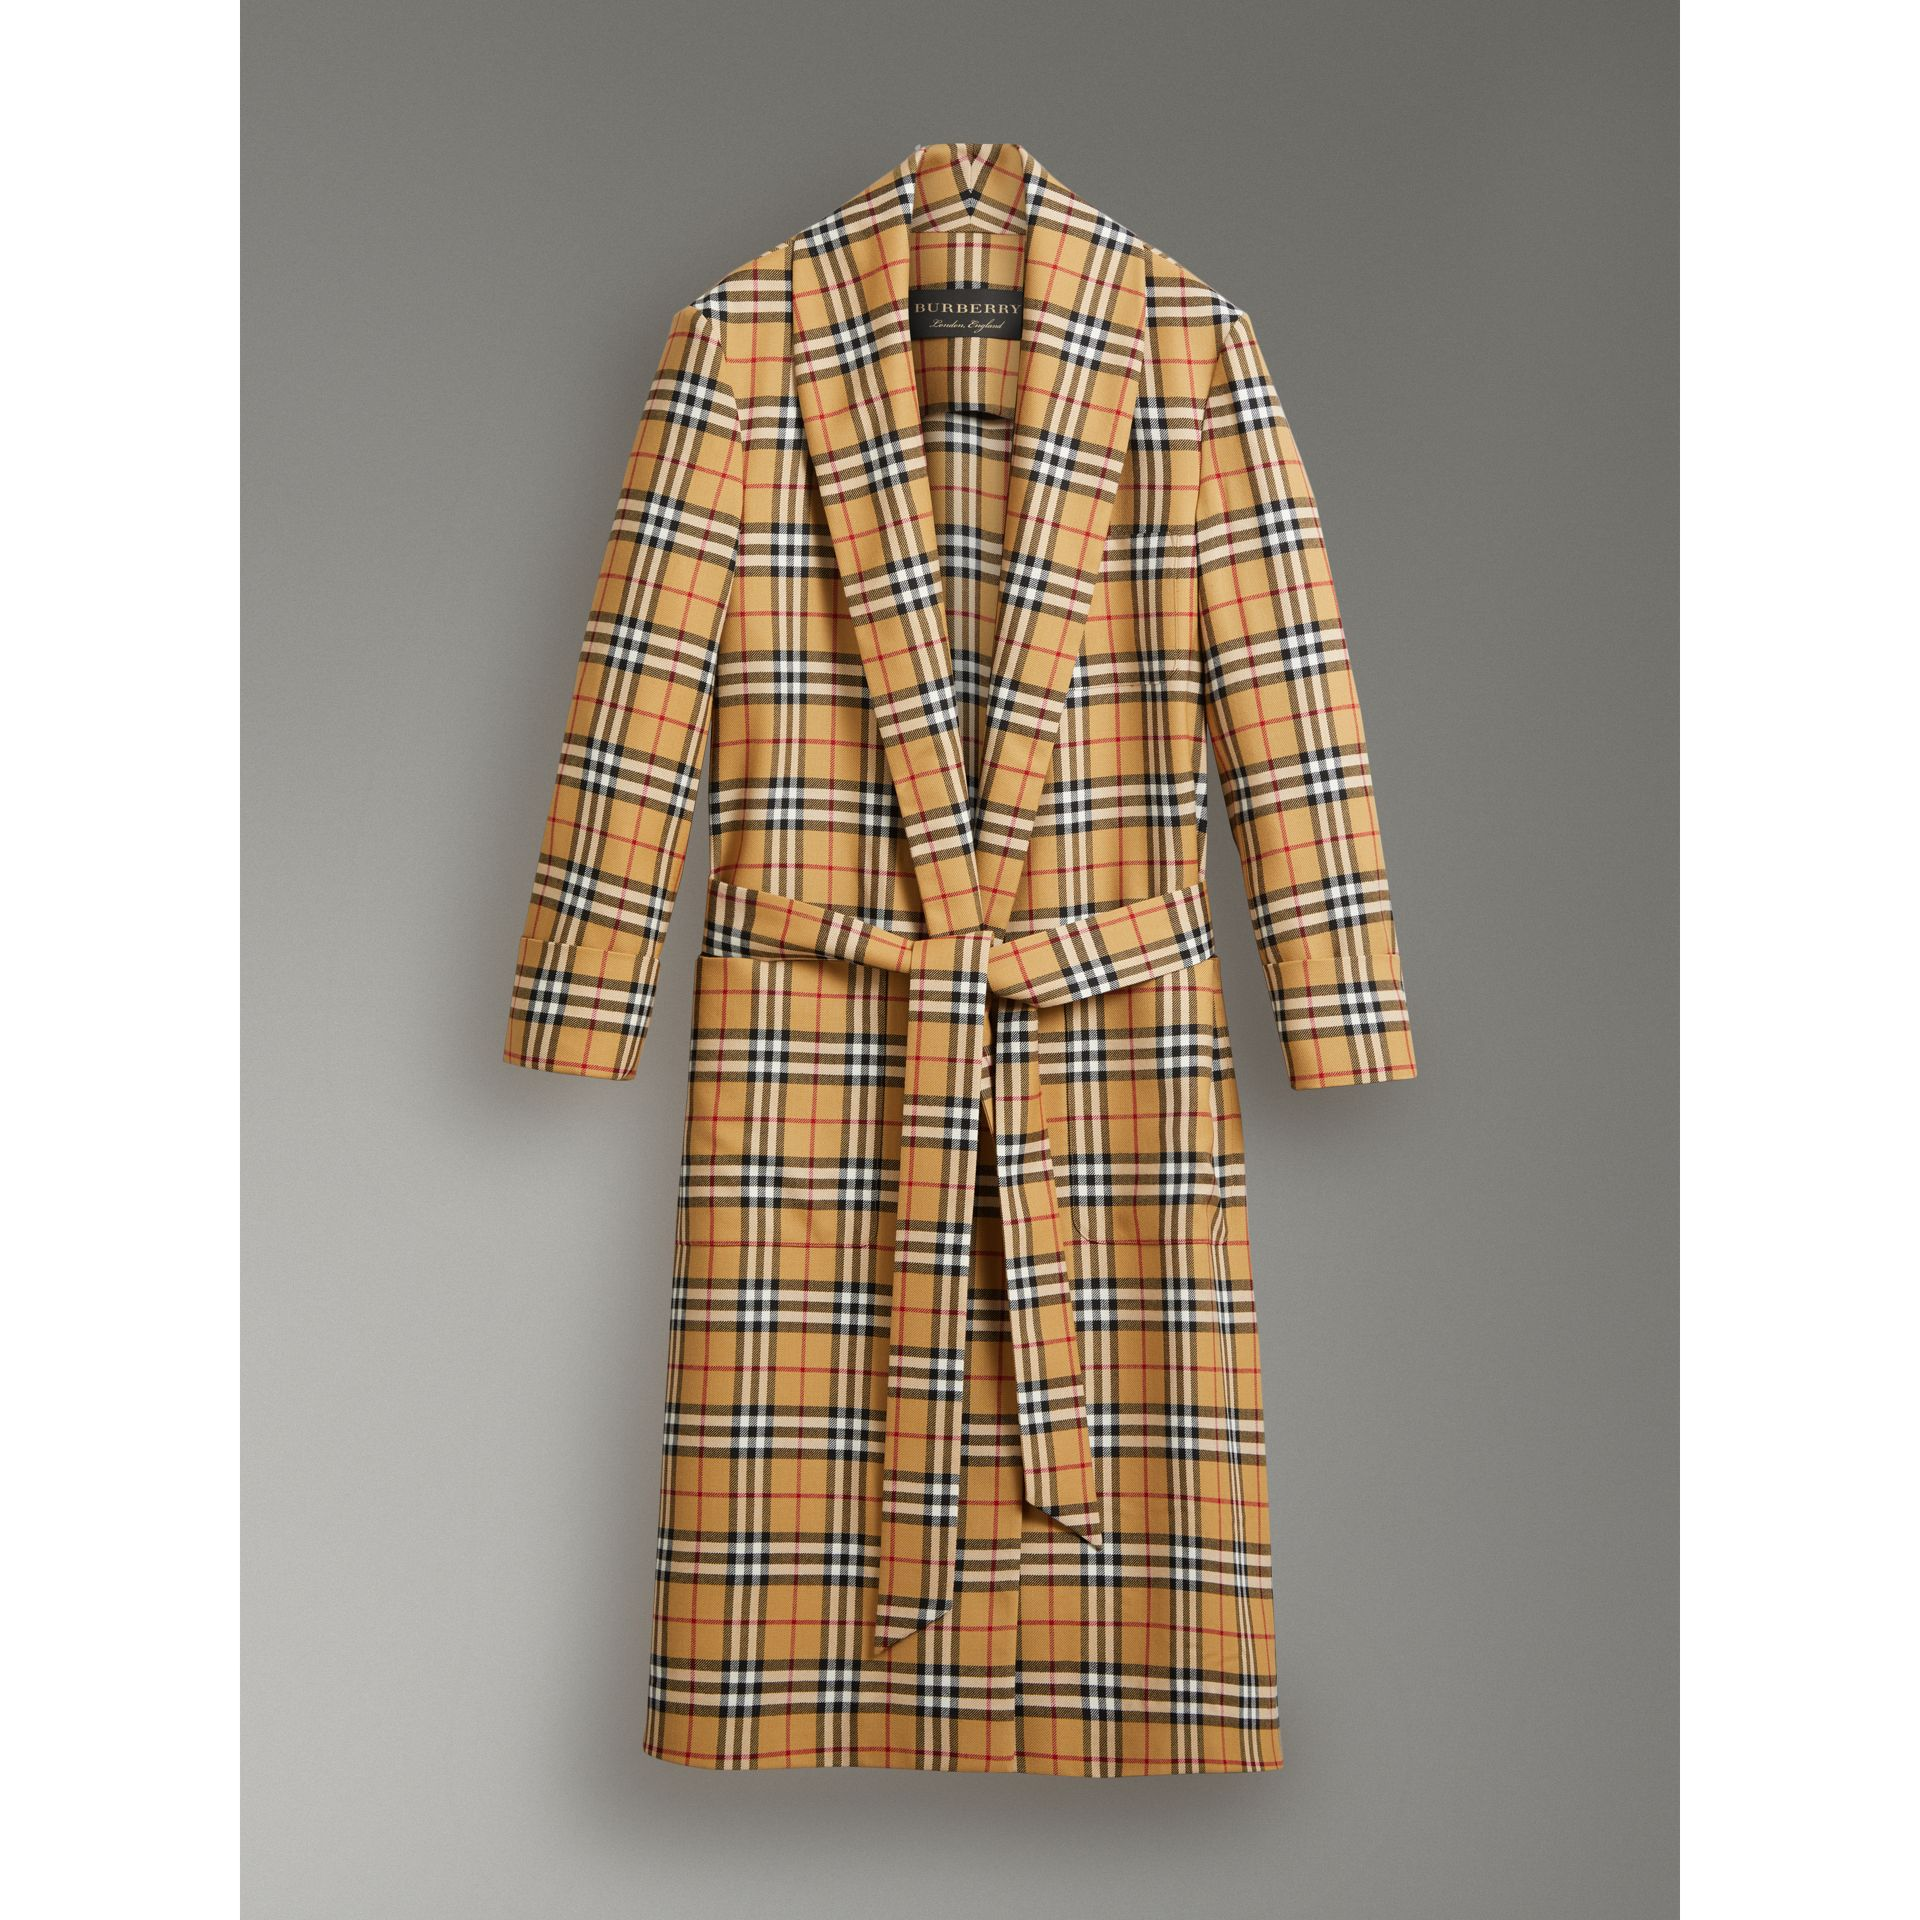 Manteau peignoir à motif Vintage check revisité (Jaune Antique) - Femme | Burberry - photo de la galerie 3